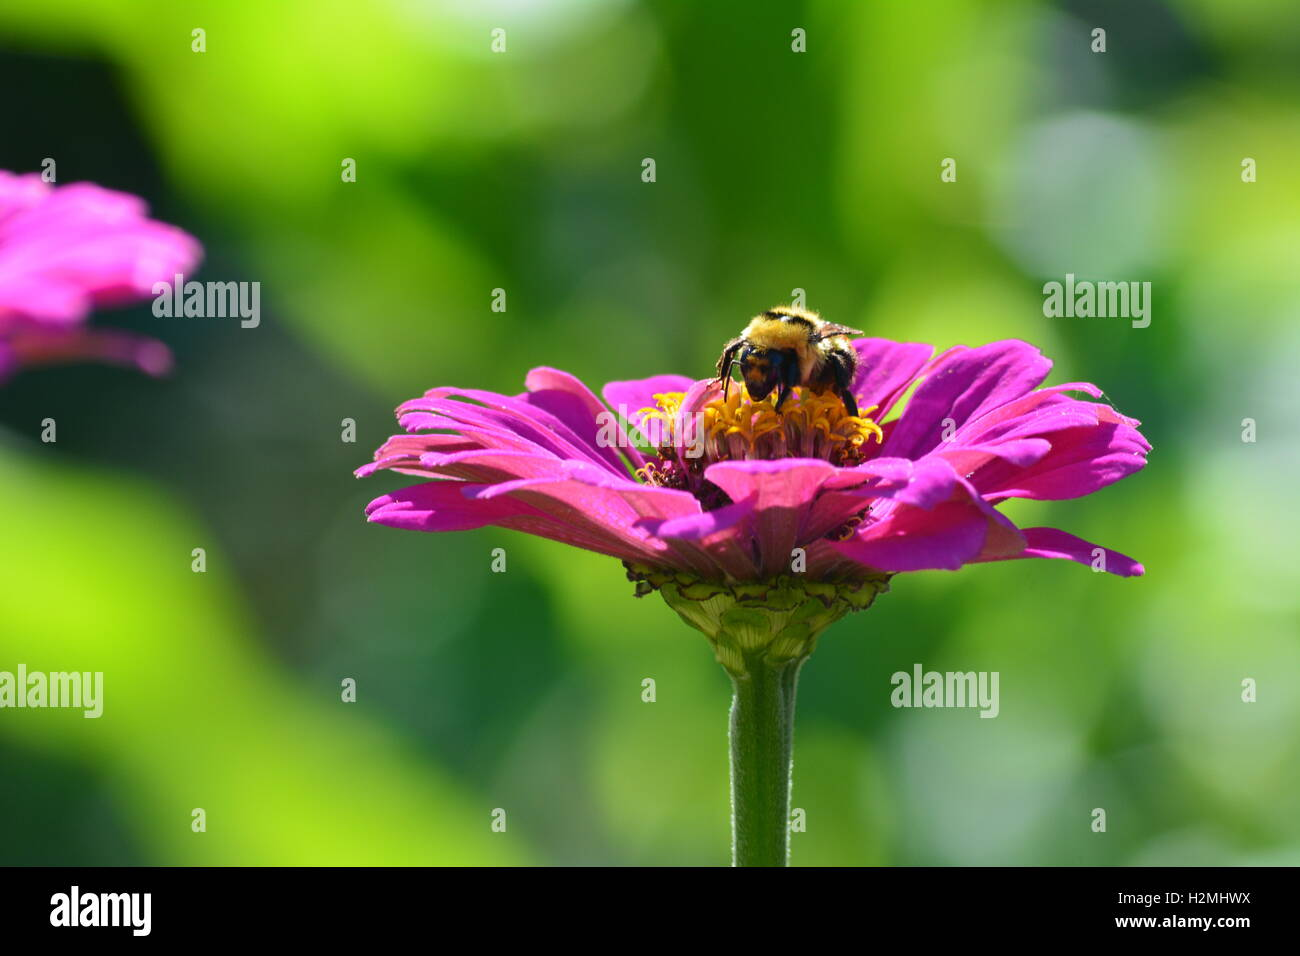 Bumblebee collecting pollen on a zinnia flower Stock Photo